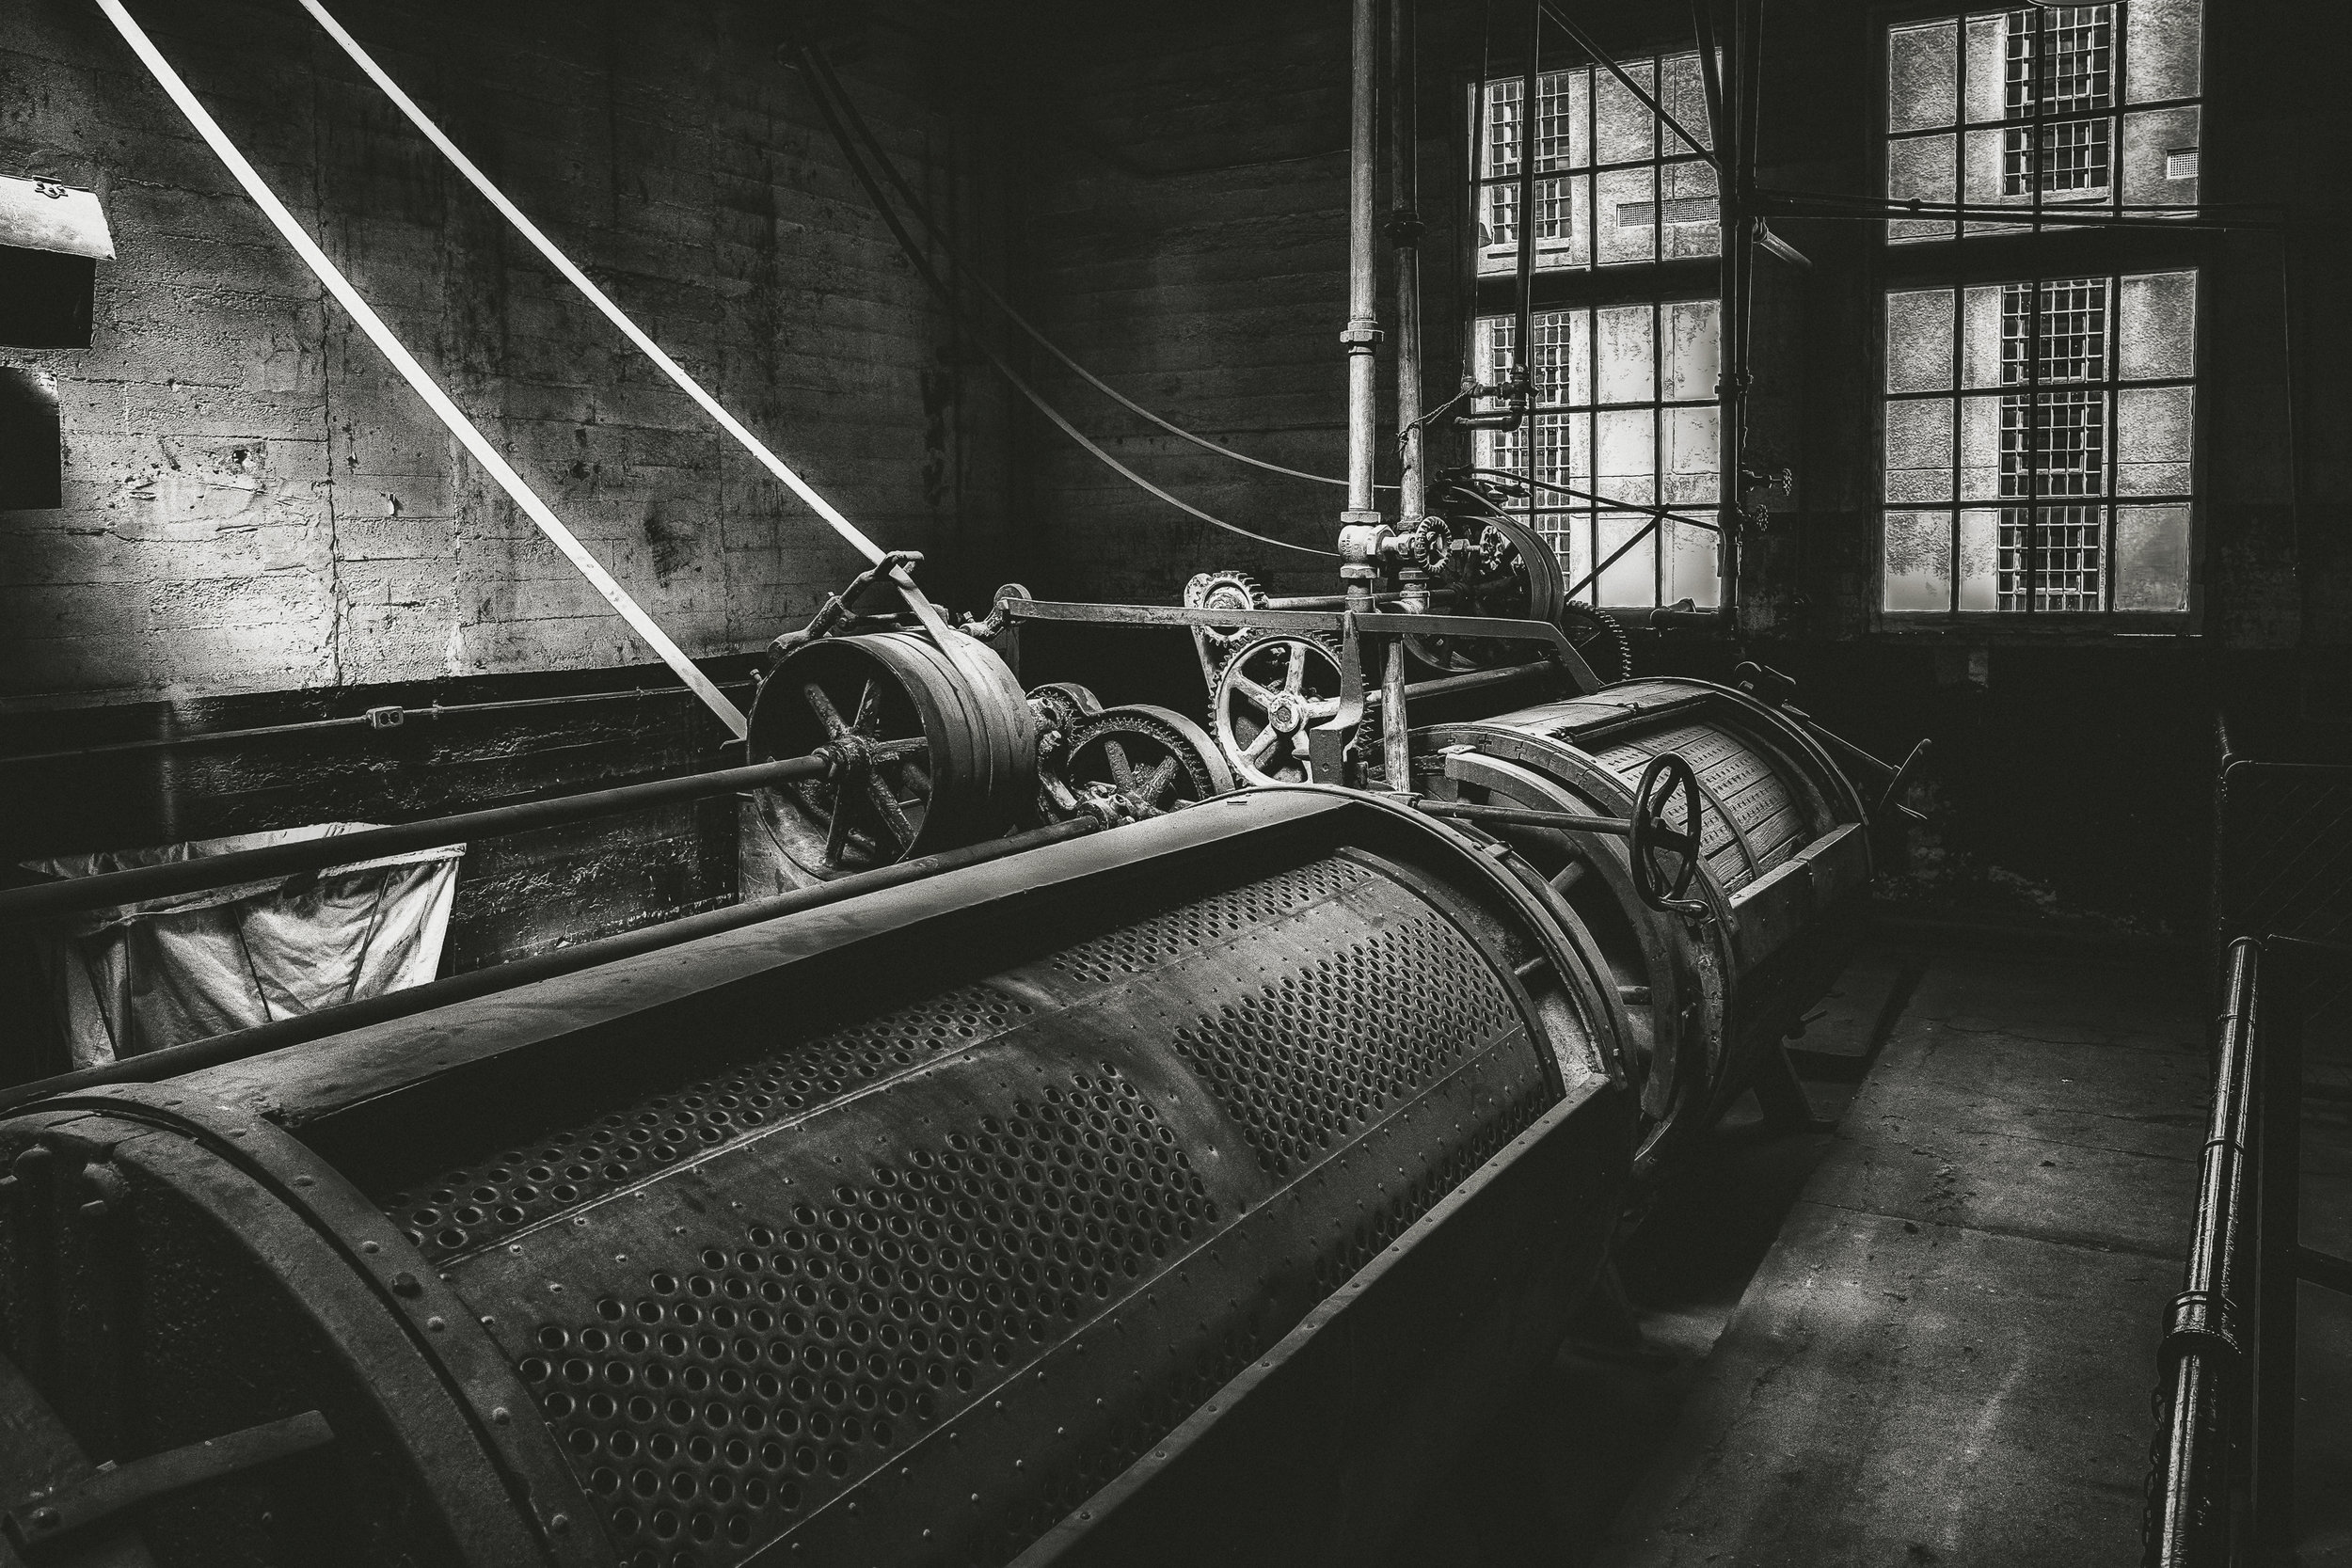 The Machine - Fujifilm X-T3, 1/125 @ f/8.0, ISO 400, 16mm. A prison laundry facility turned museum. Shot at the Old Idaho State Penitentiary. I particularly like how the light emanating from the upper left corner illuminated the machinery.